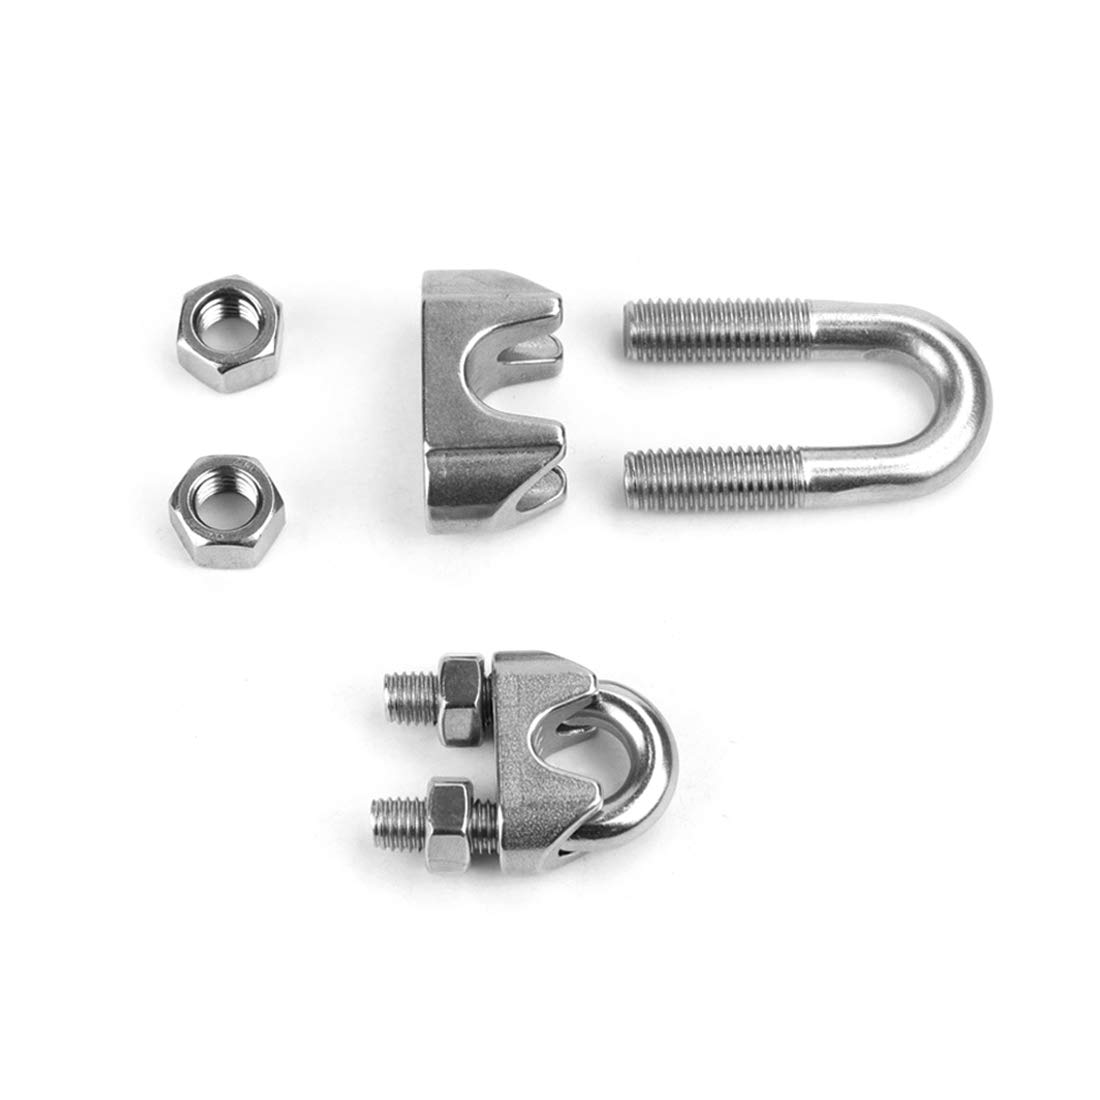 Wire Rope Clip 12mm 1//2 Inch 304 Stainless Steel Saddle Clamp Cable Wire Rope Clip Fastener 5pcs